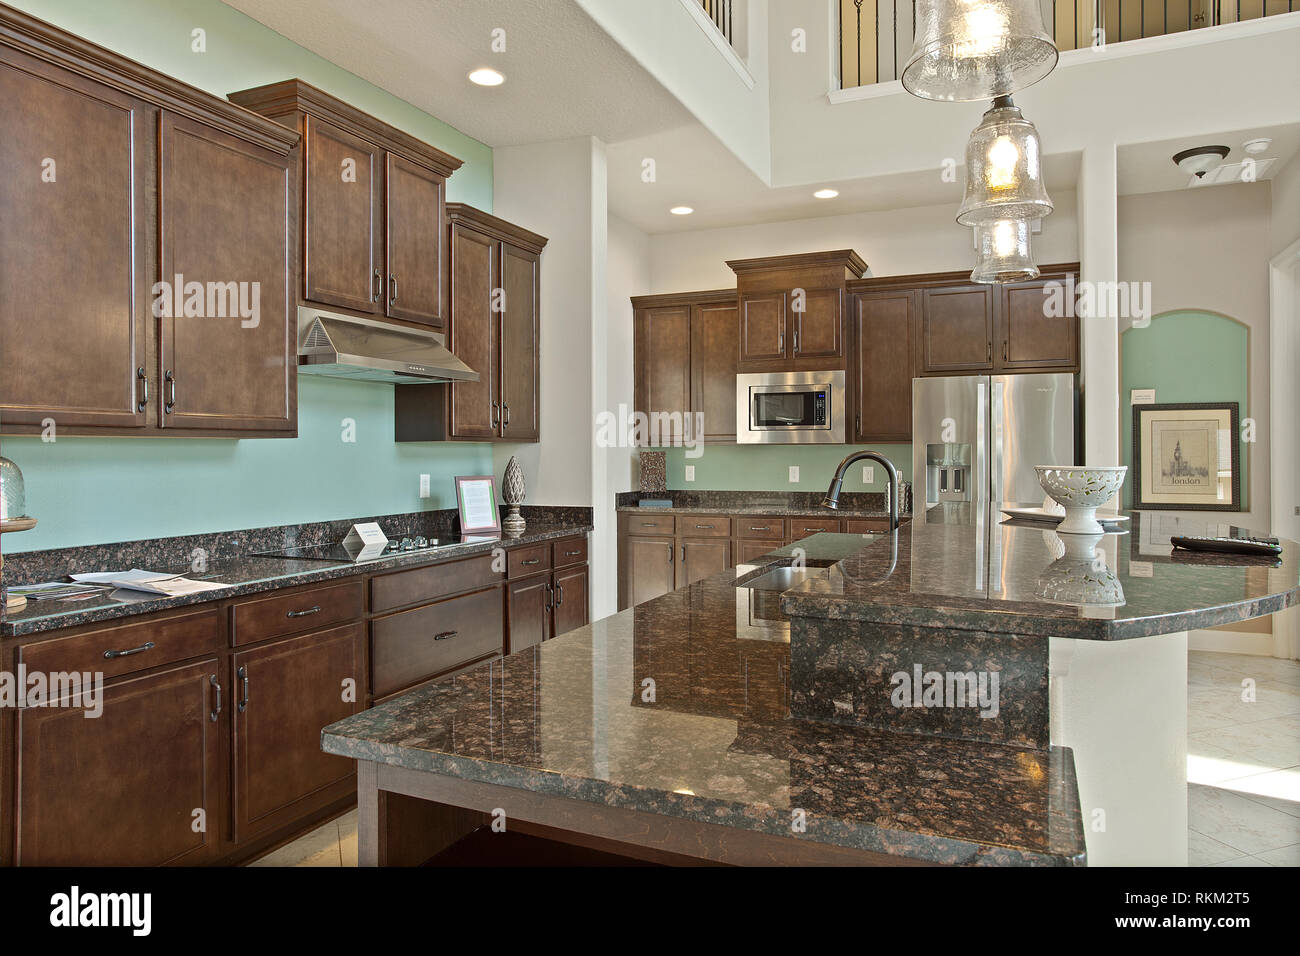 Modern Kitchen Home Interior With Hardwood And Wooden